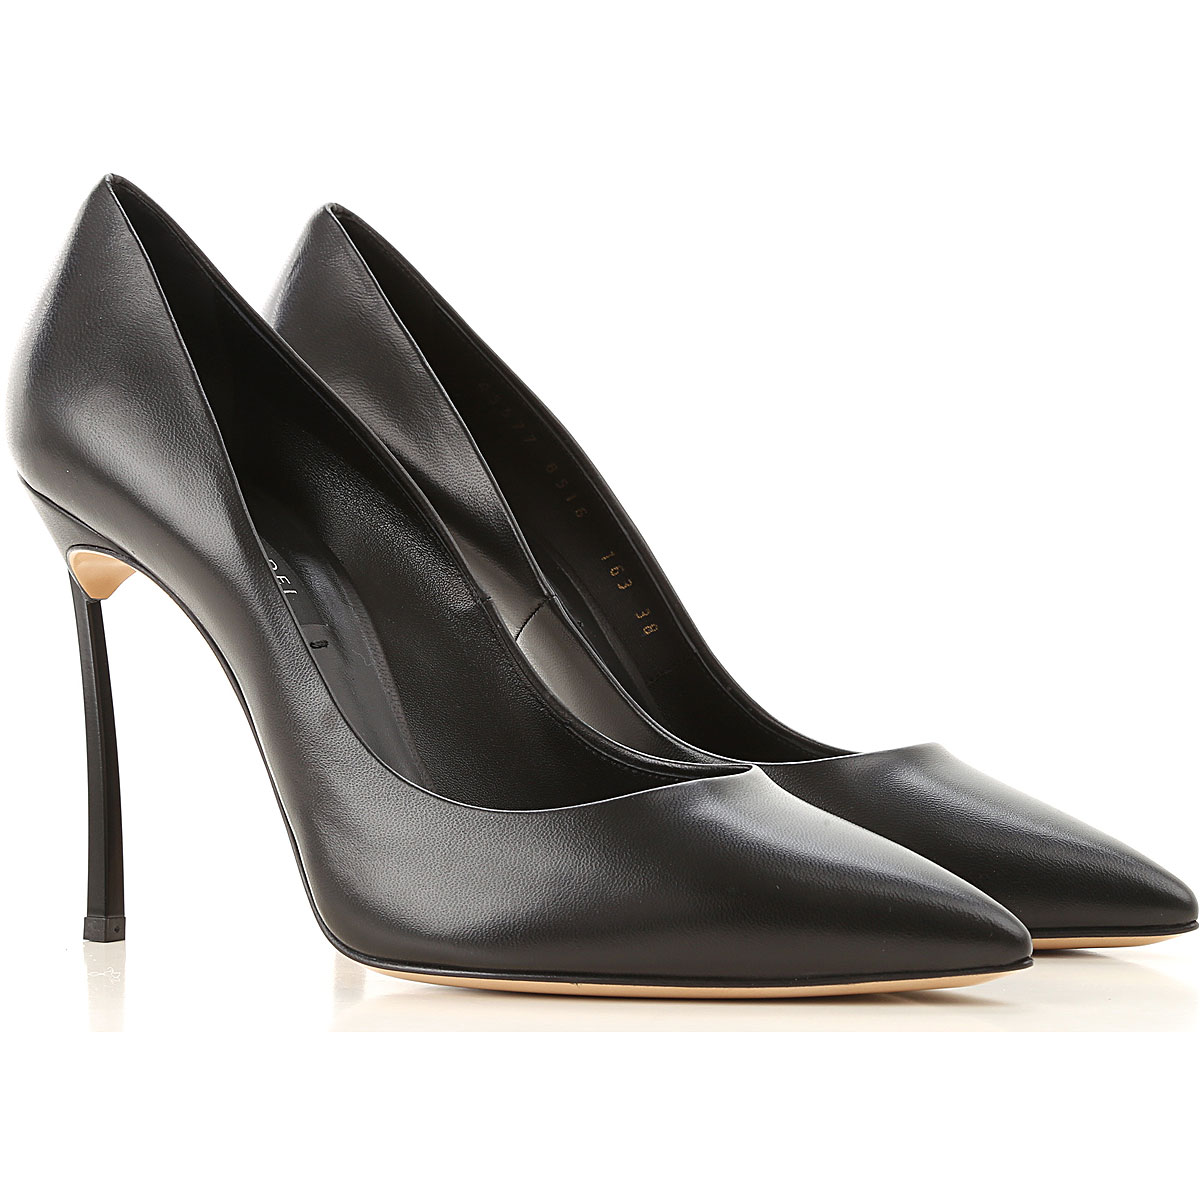 Casadei Pumps & High Heels for Women On Sale, Black, Leather, 2019, 6 7 8 9